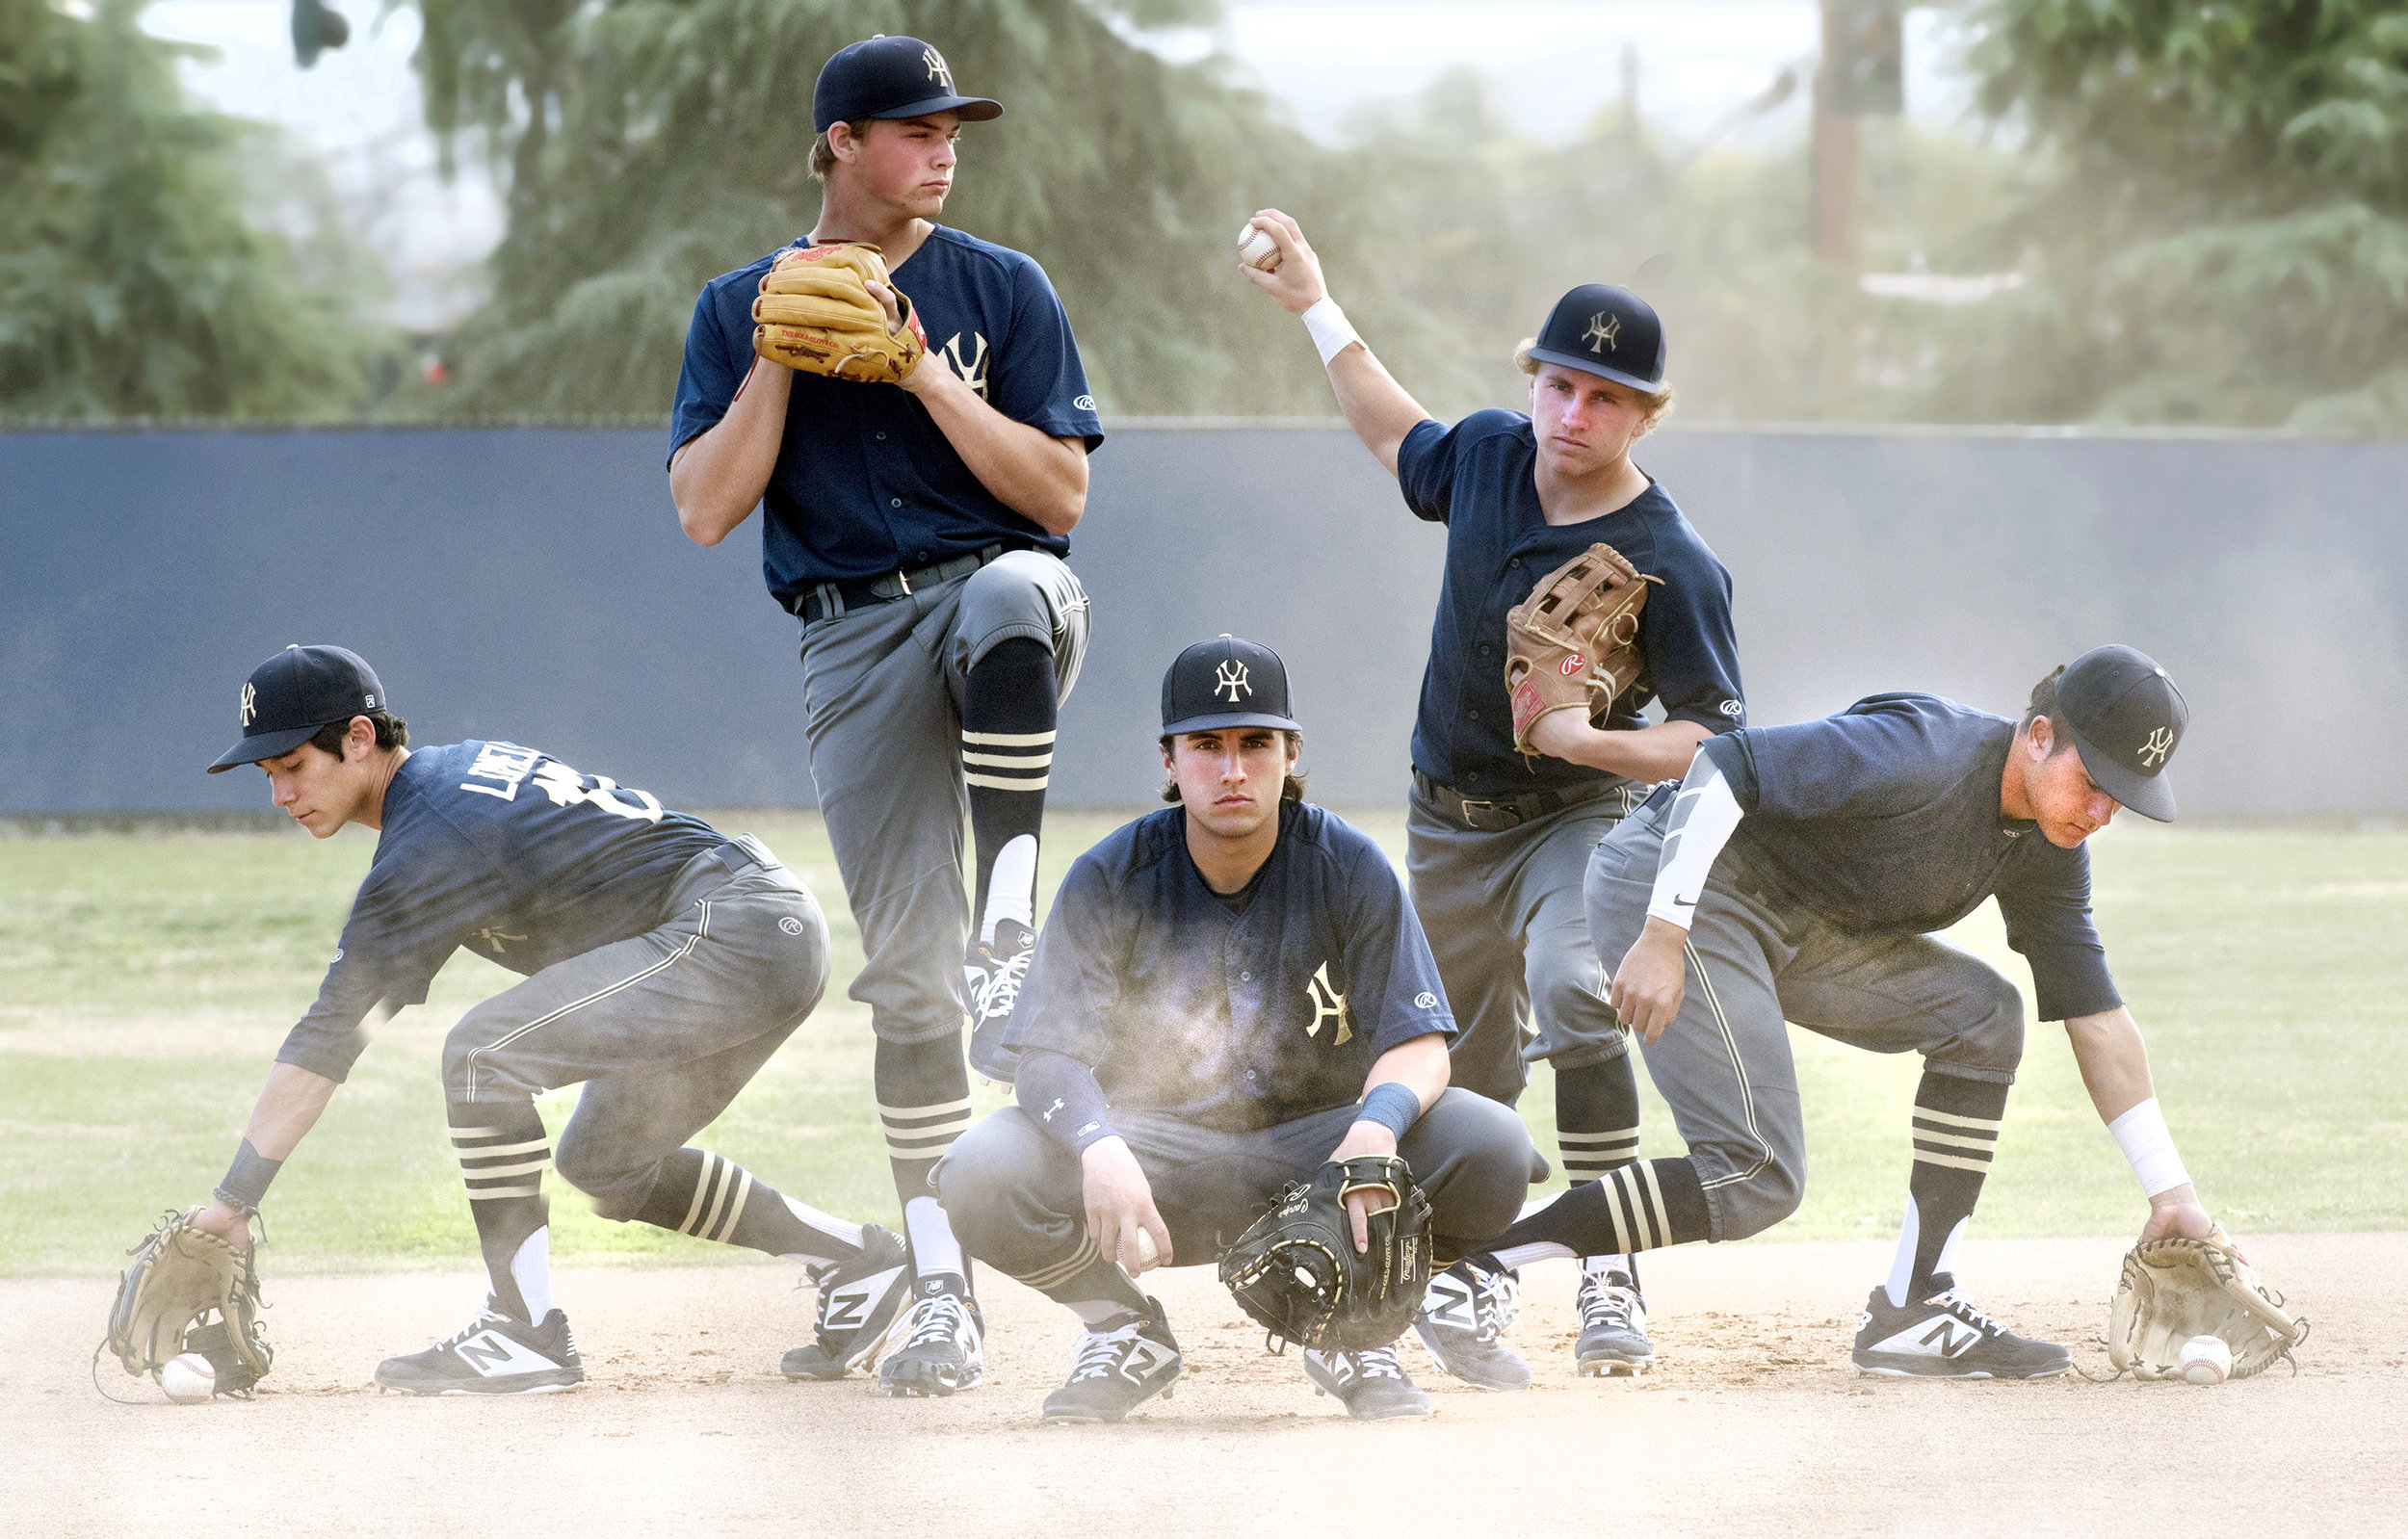 Yucaipa's last year starters who won the Division 2 title have been close friends and teammates since the sixth grade. The Thunderbirds, from left, shortstop Joseph Lomeli, 18, pitcher Tyson Heaton, 17, catcher Michael Carpentier, 18, outfielder Anthony Gibbons, 18, and second baseman Jordan Andrade, 17, will compete in Division 1 this season. Photographed at the Yucaipa high school Tuesday, Jan 29, 2019.